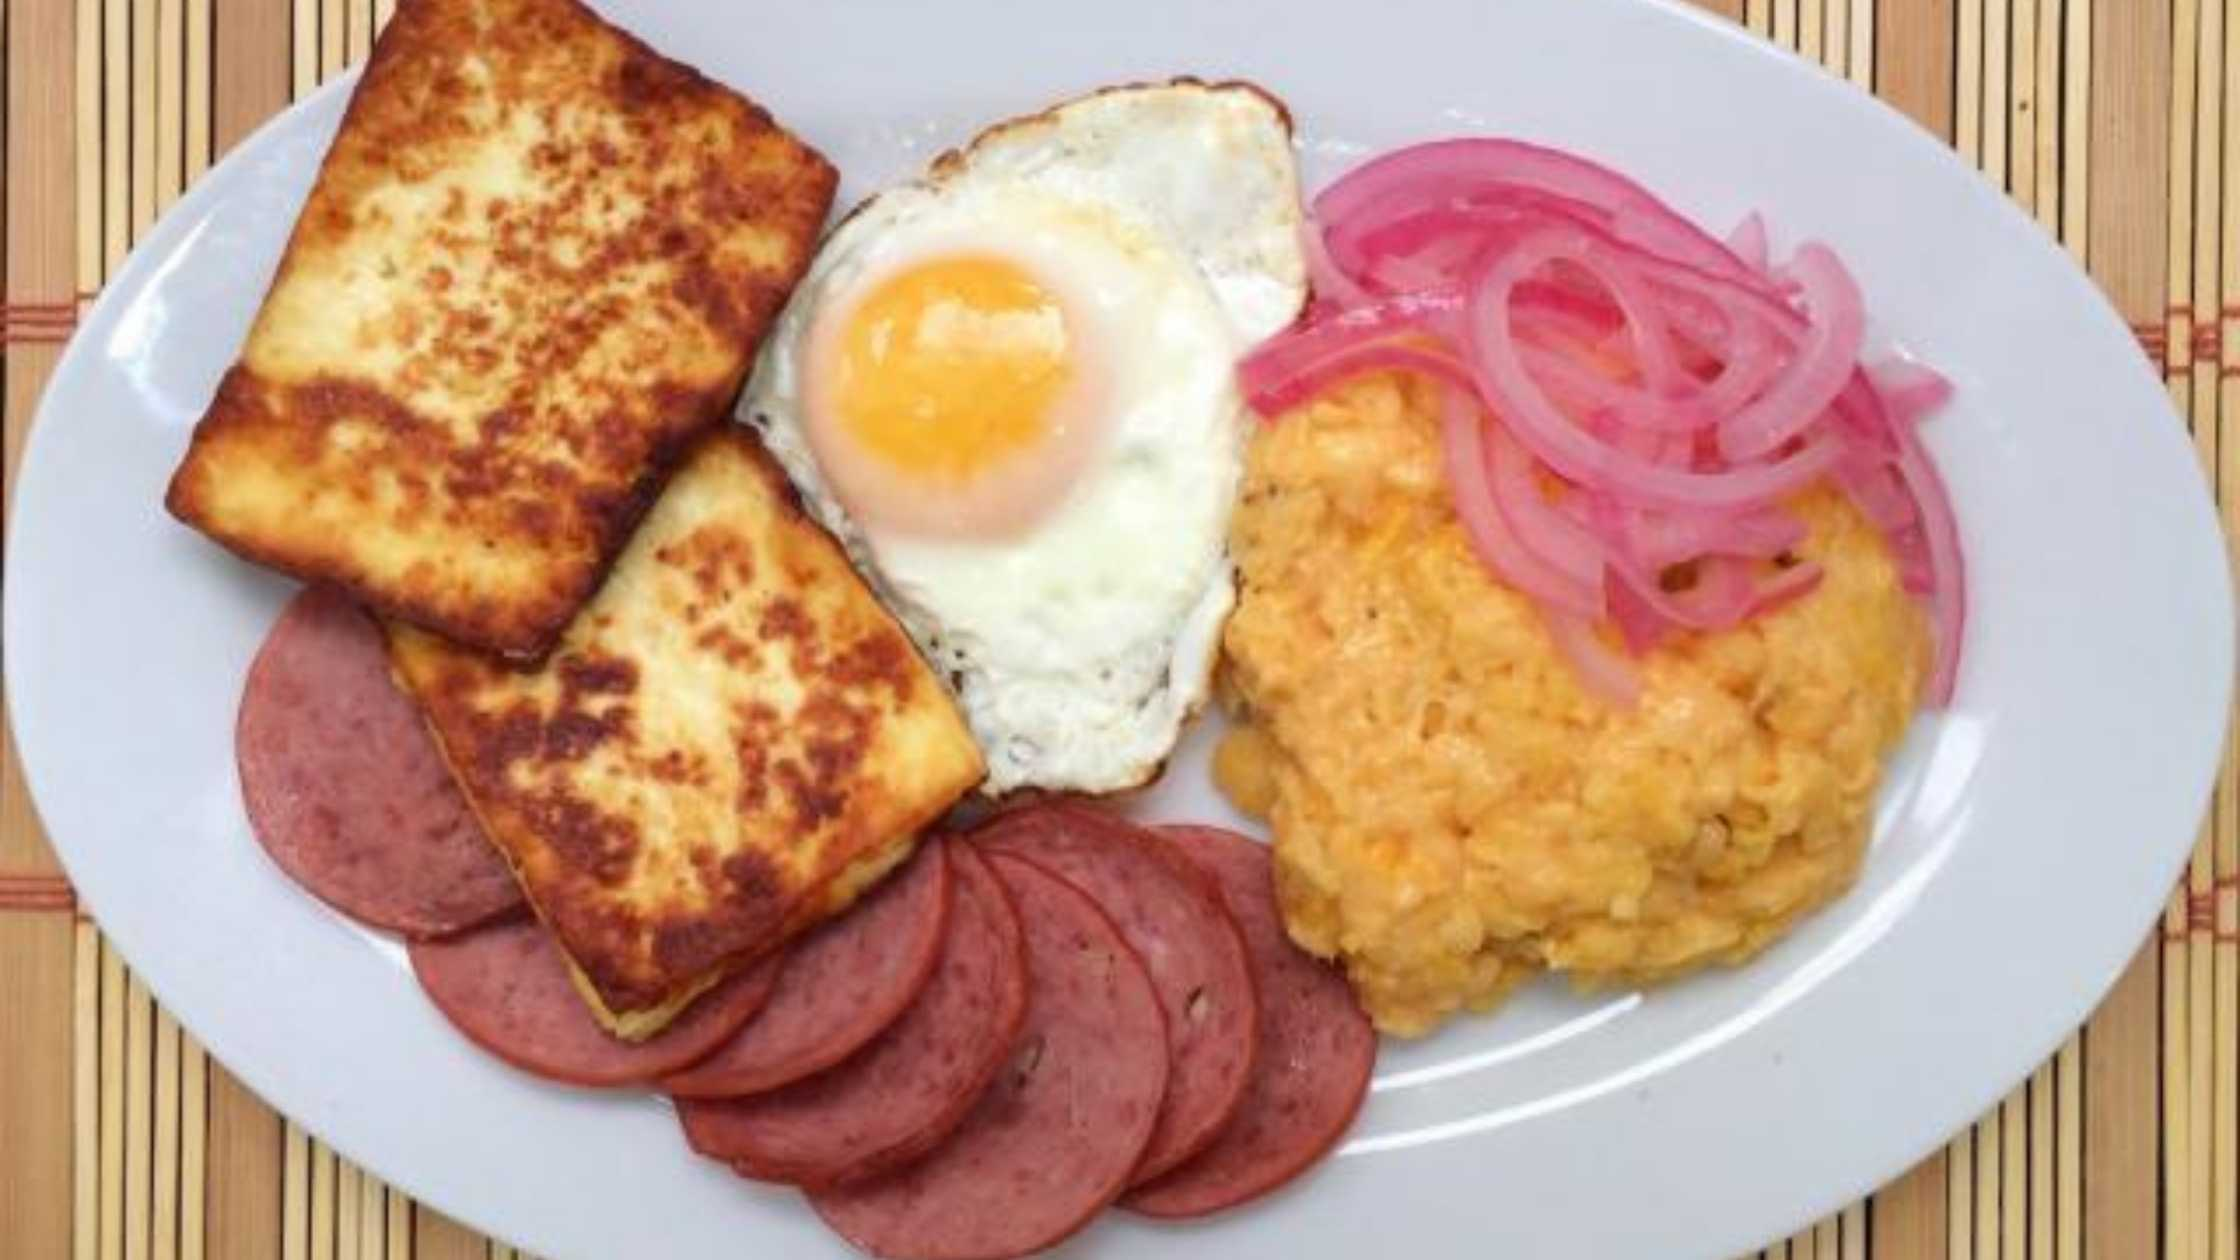 mangu dominicano on a white plate.